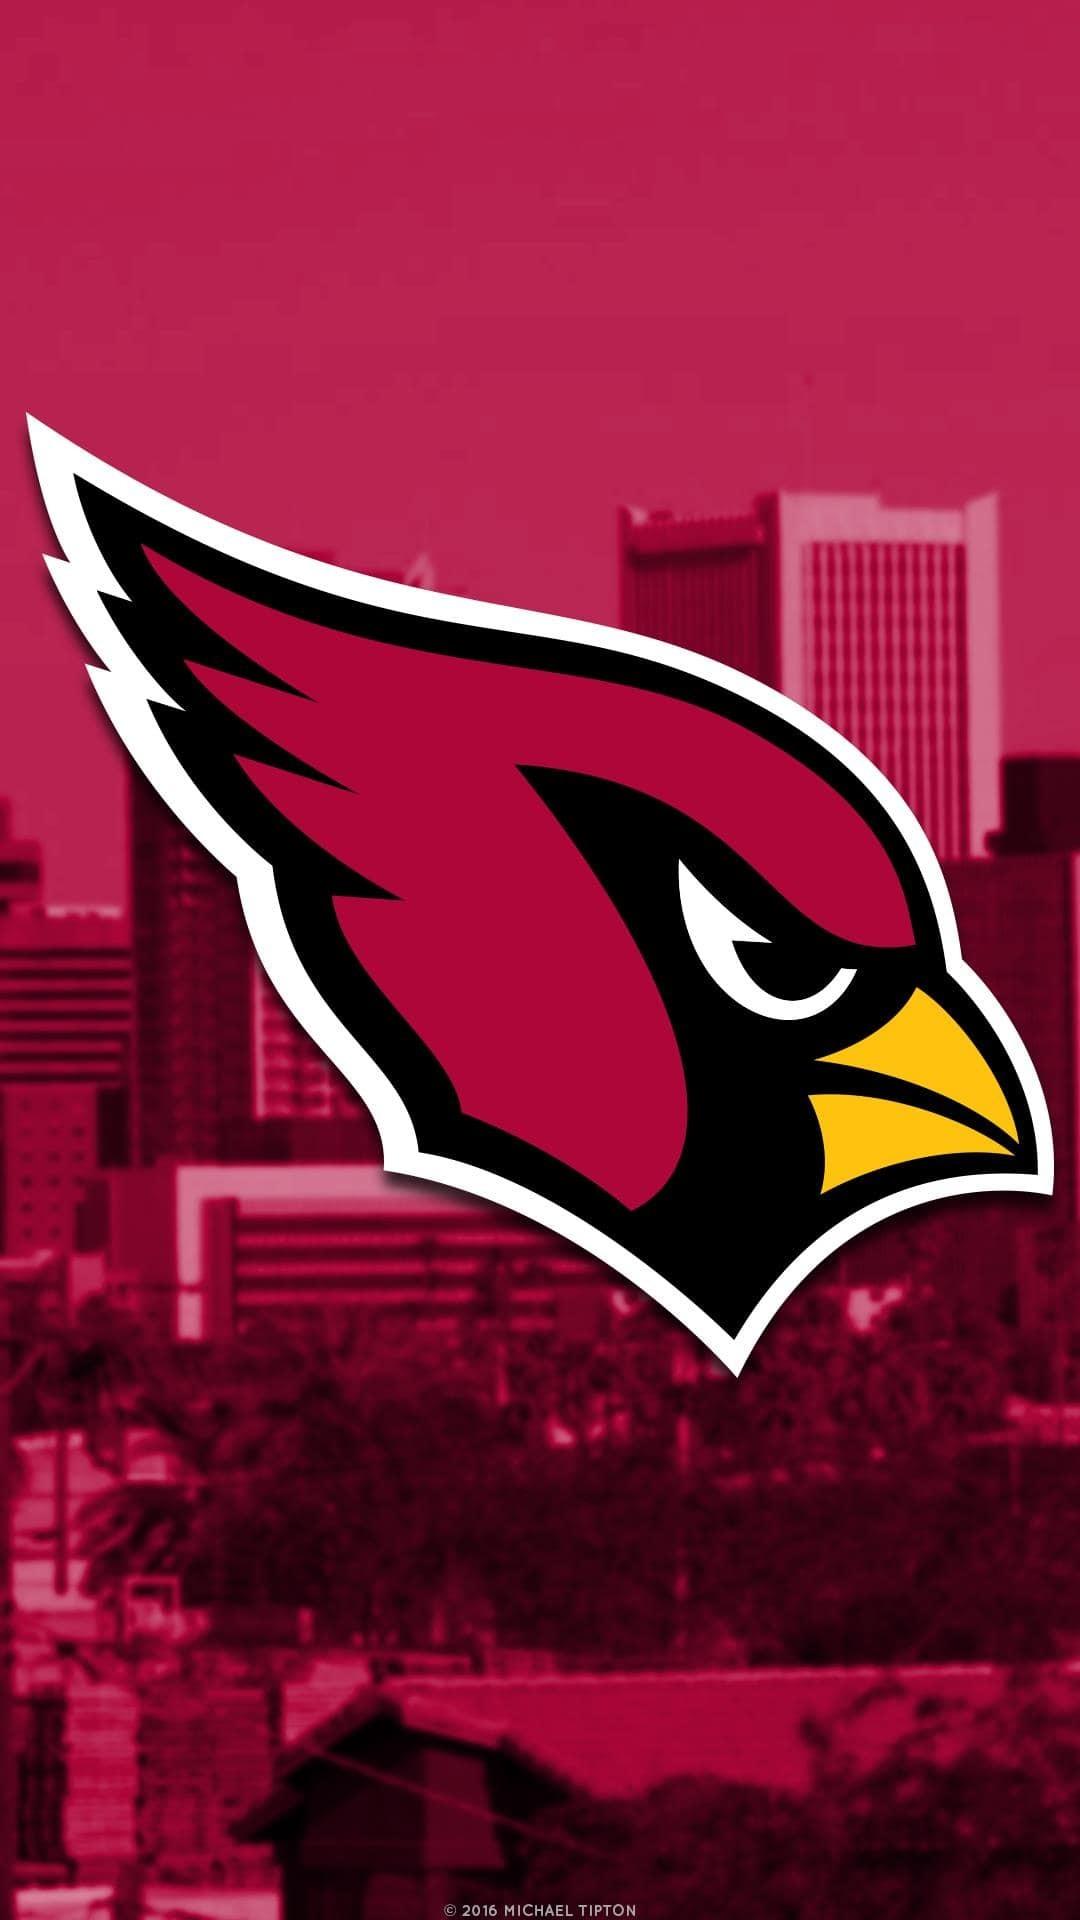 The Highest Quality Arizona Cardinals Football Schedule Wallpapers and Logo  Backgrounds for iPhone, Andriod, Galaxy, and Desktop PC.